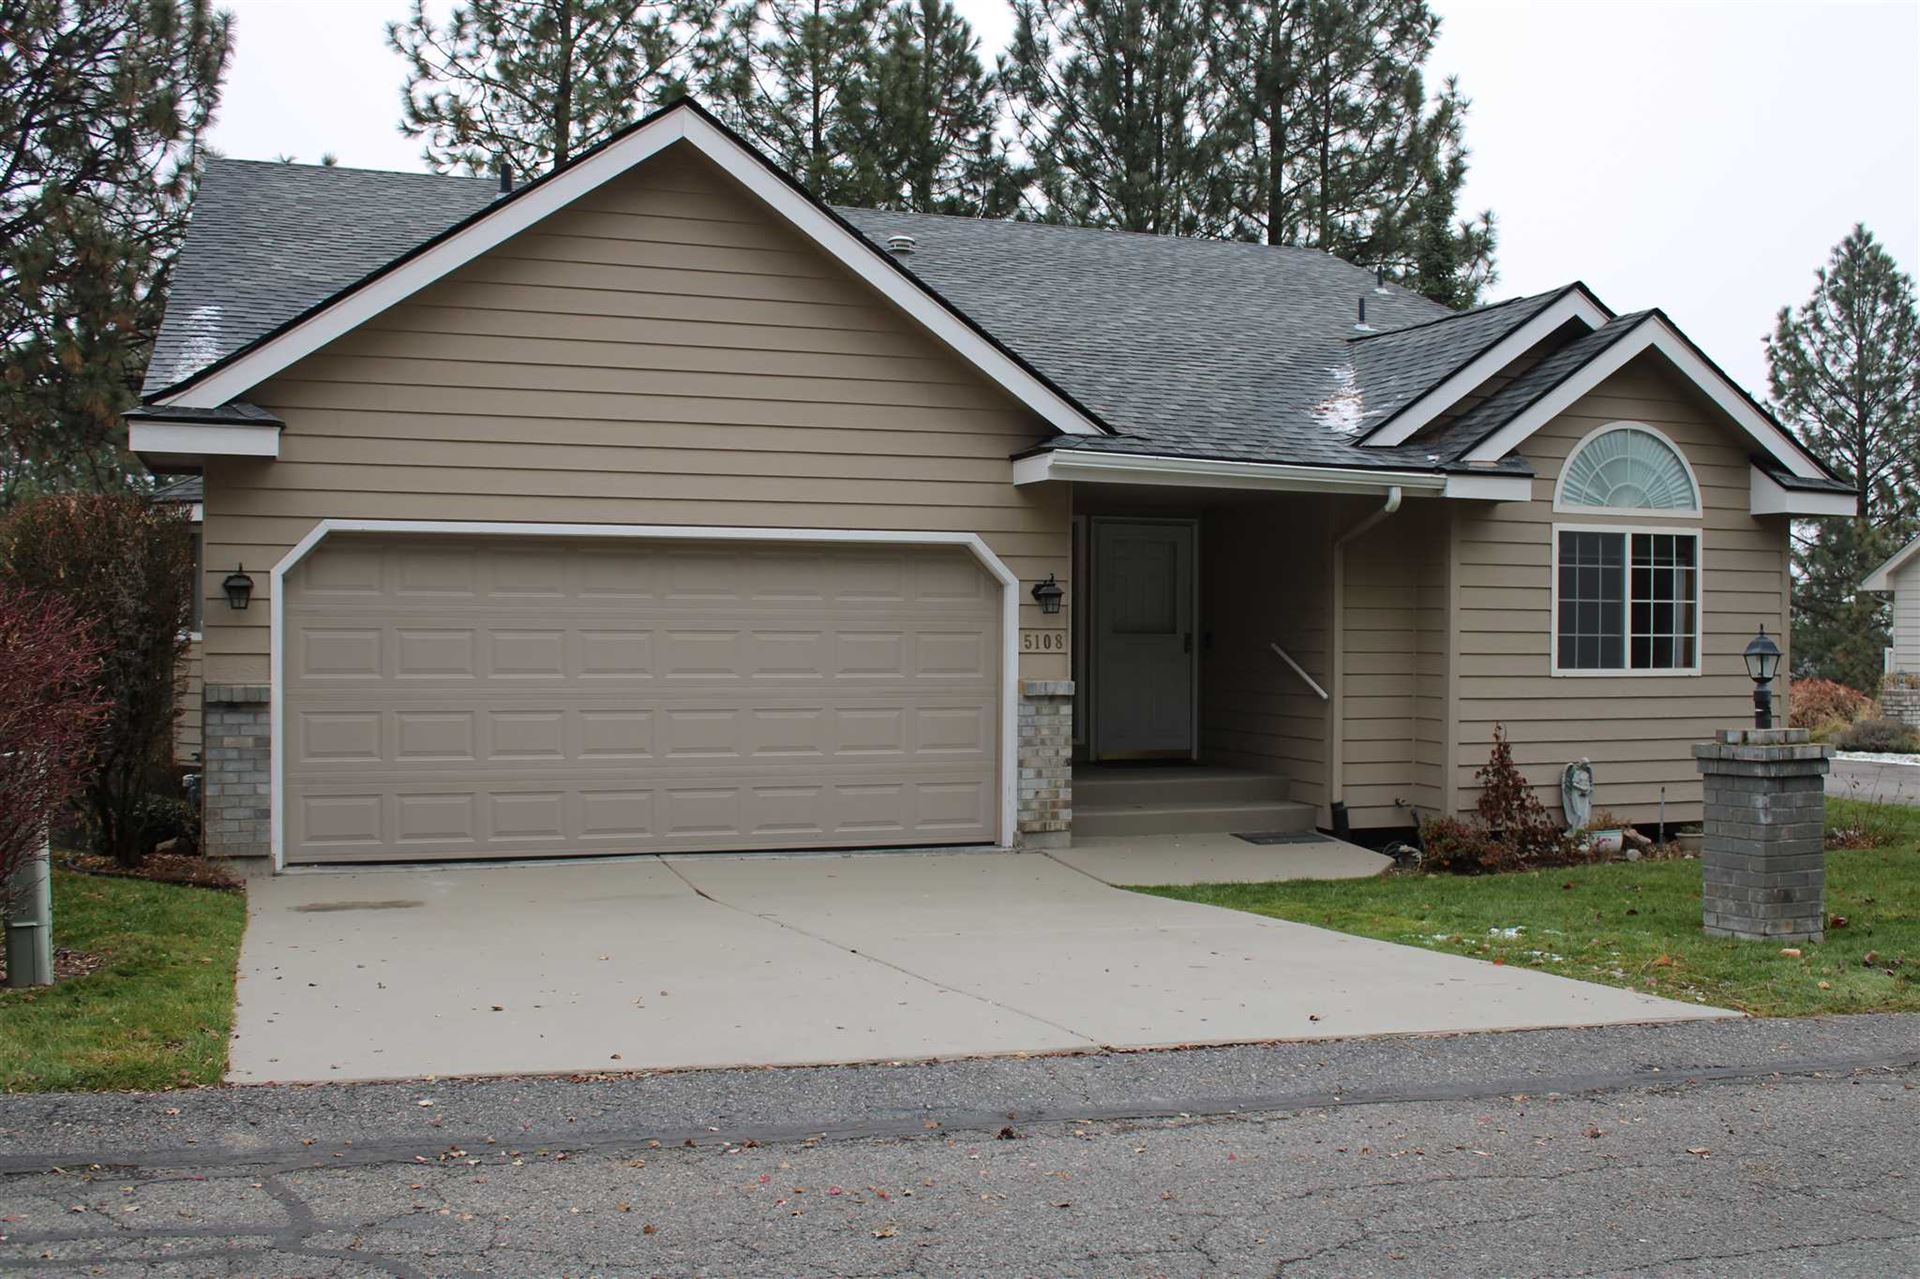 5108 N N. Hutton View St, Spokane, WA 99212 - #: 202025500